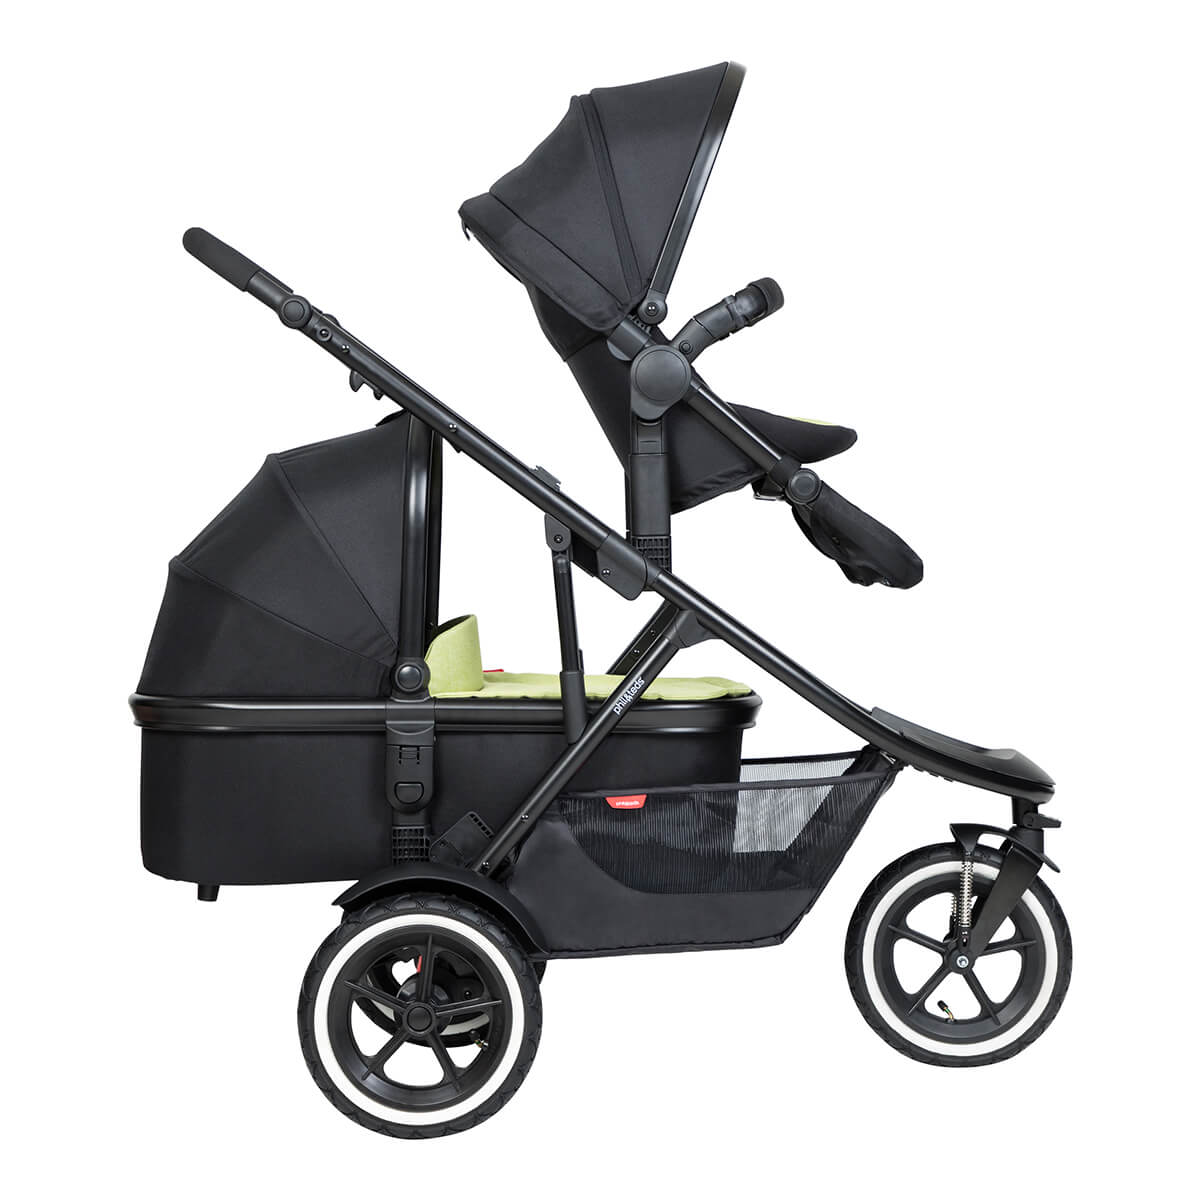 https://cdn.accentuate.io/4513463205984/19440099688632/philteds-sport-buggy-with-double-kit-extended-clip-and-snug-carrycot-side-view-v1626486611211.jpg?1200x1200